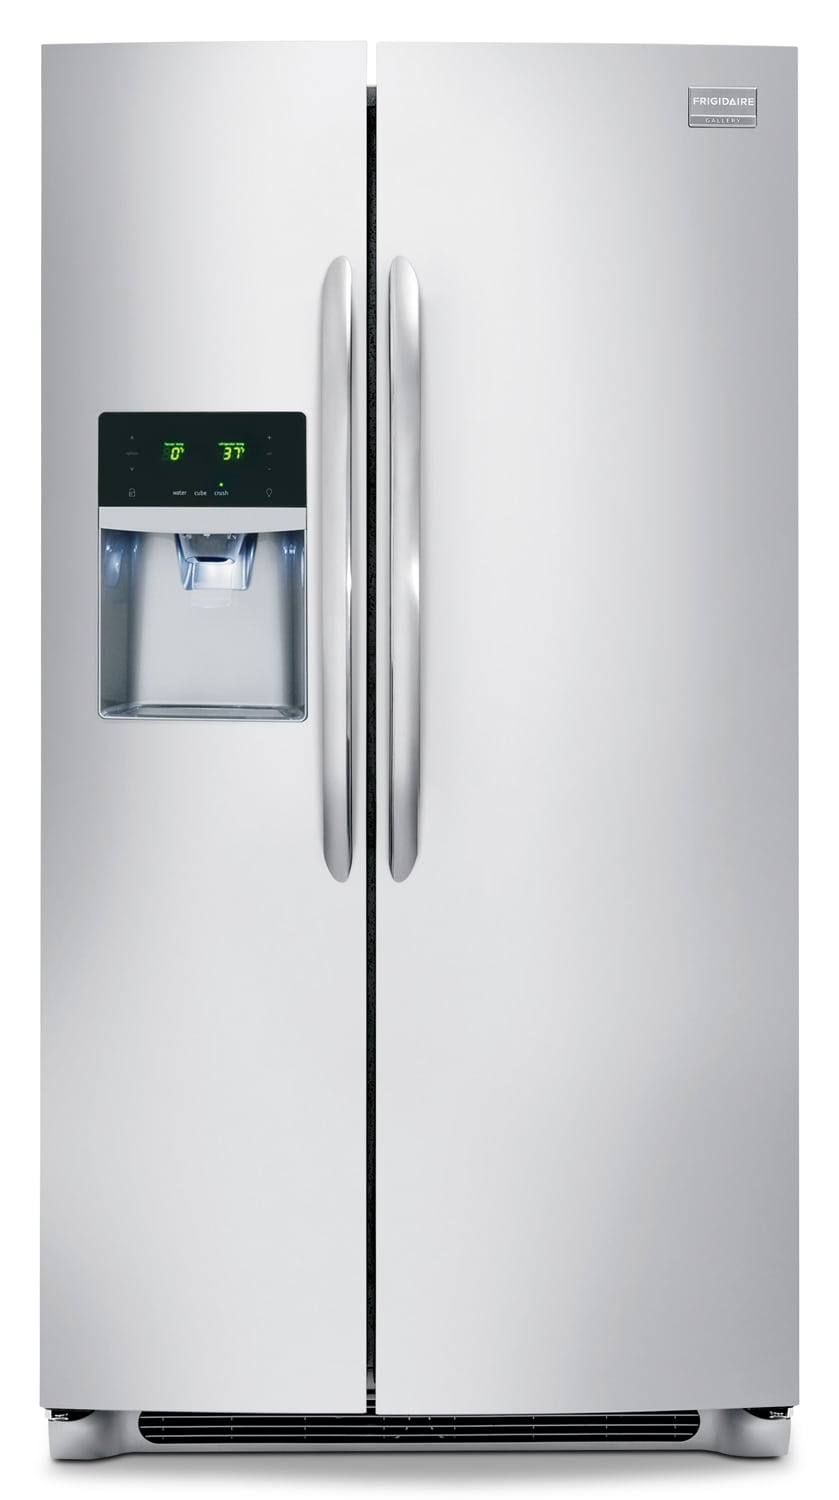 Refrigerators and Freezers - Frigidaire Gallery Stainless Steel Side-by-Side Refrigerator (22.6 Cu. Ft.) - FGHS2355PF